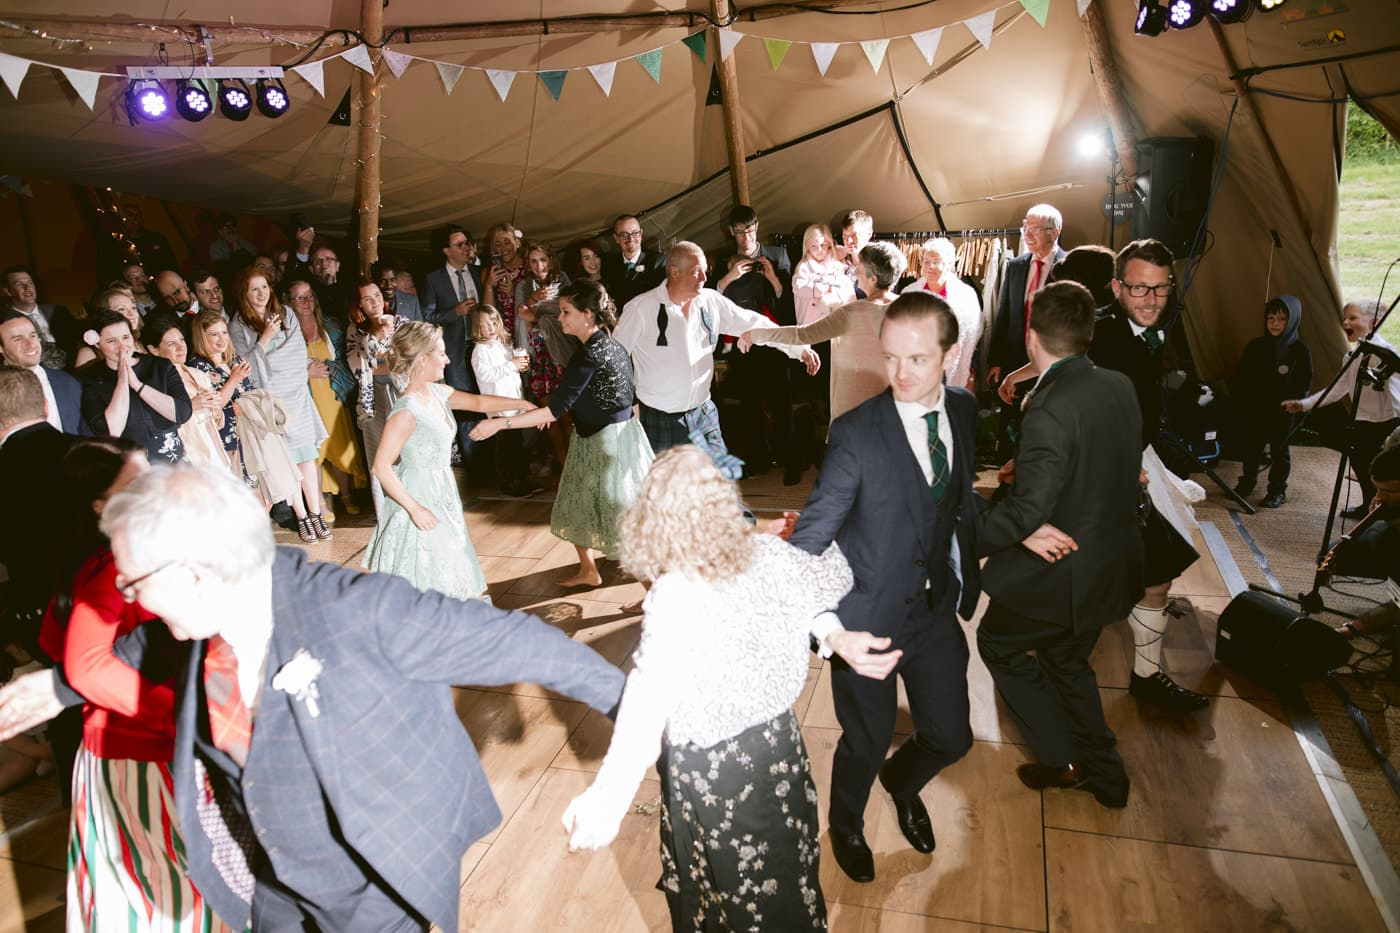 Guests Lined up Dancing in Main Tipi Venue Hall